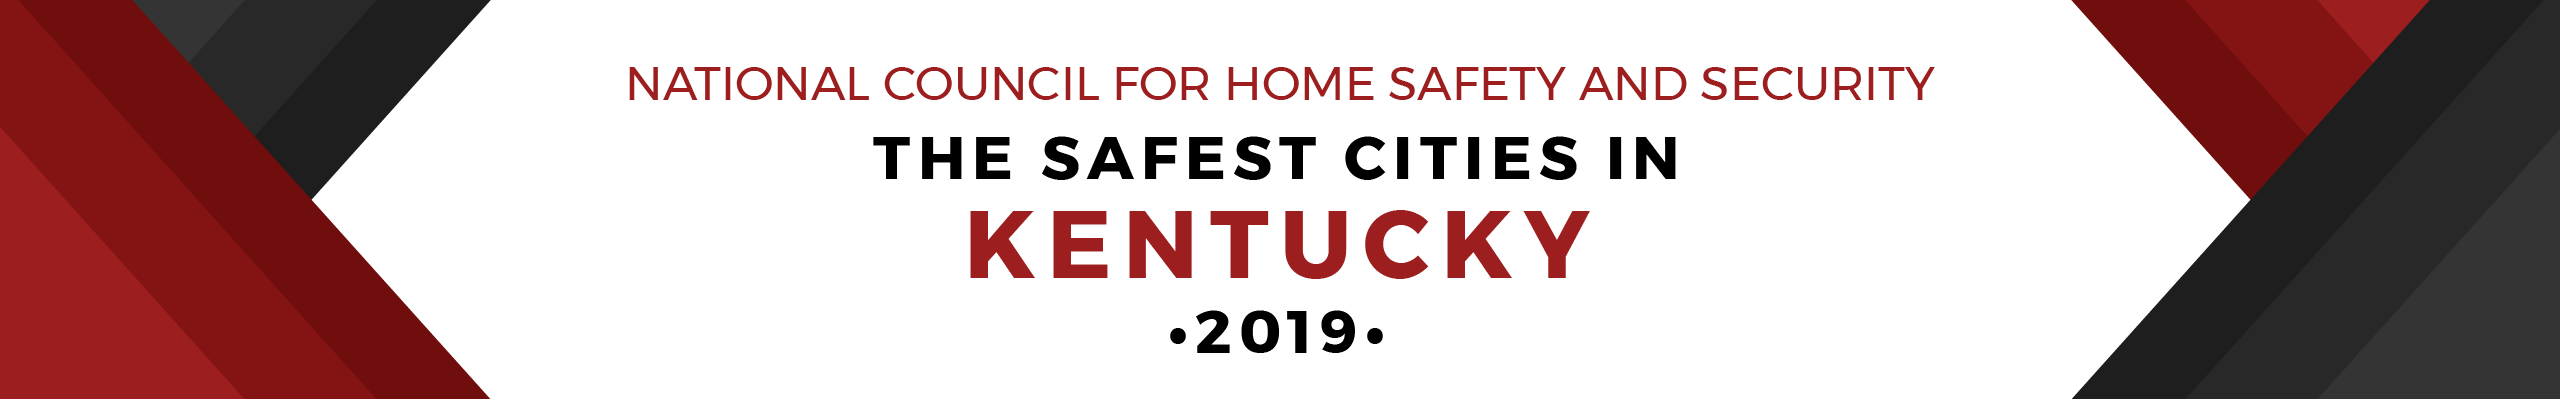 Safest Cities Kentucky - header